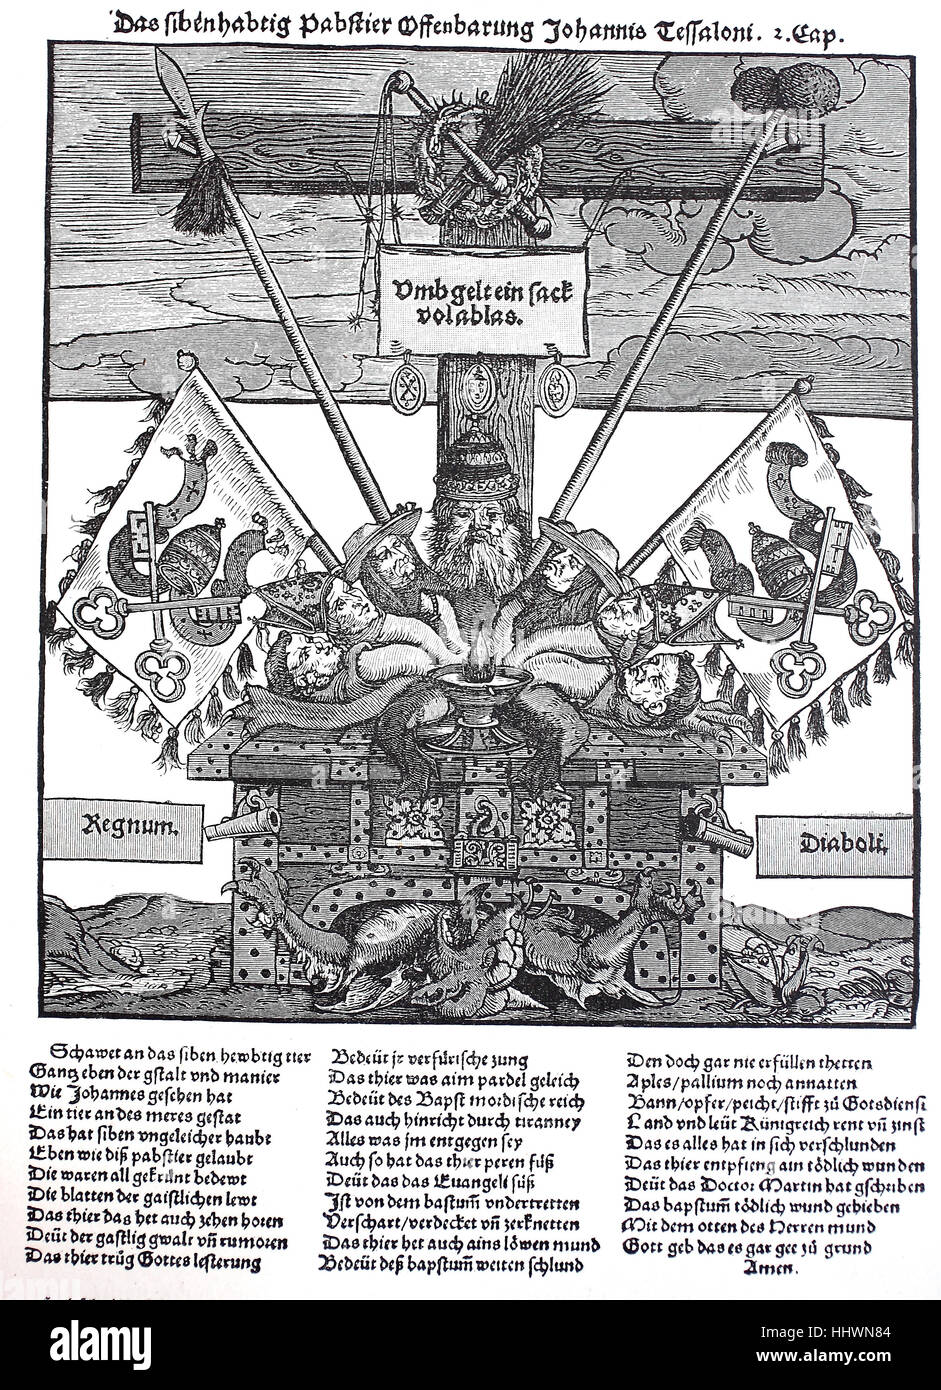 A leaflet in the Reformation period against the indulgence, Woodcut, Germany, historical image or illustration, - Stock Image